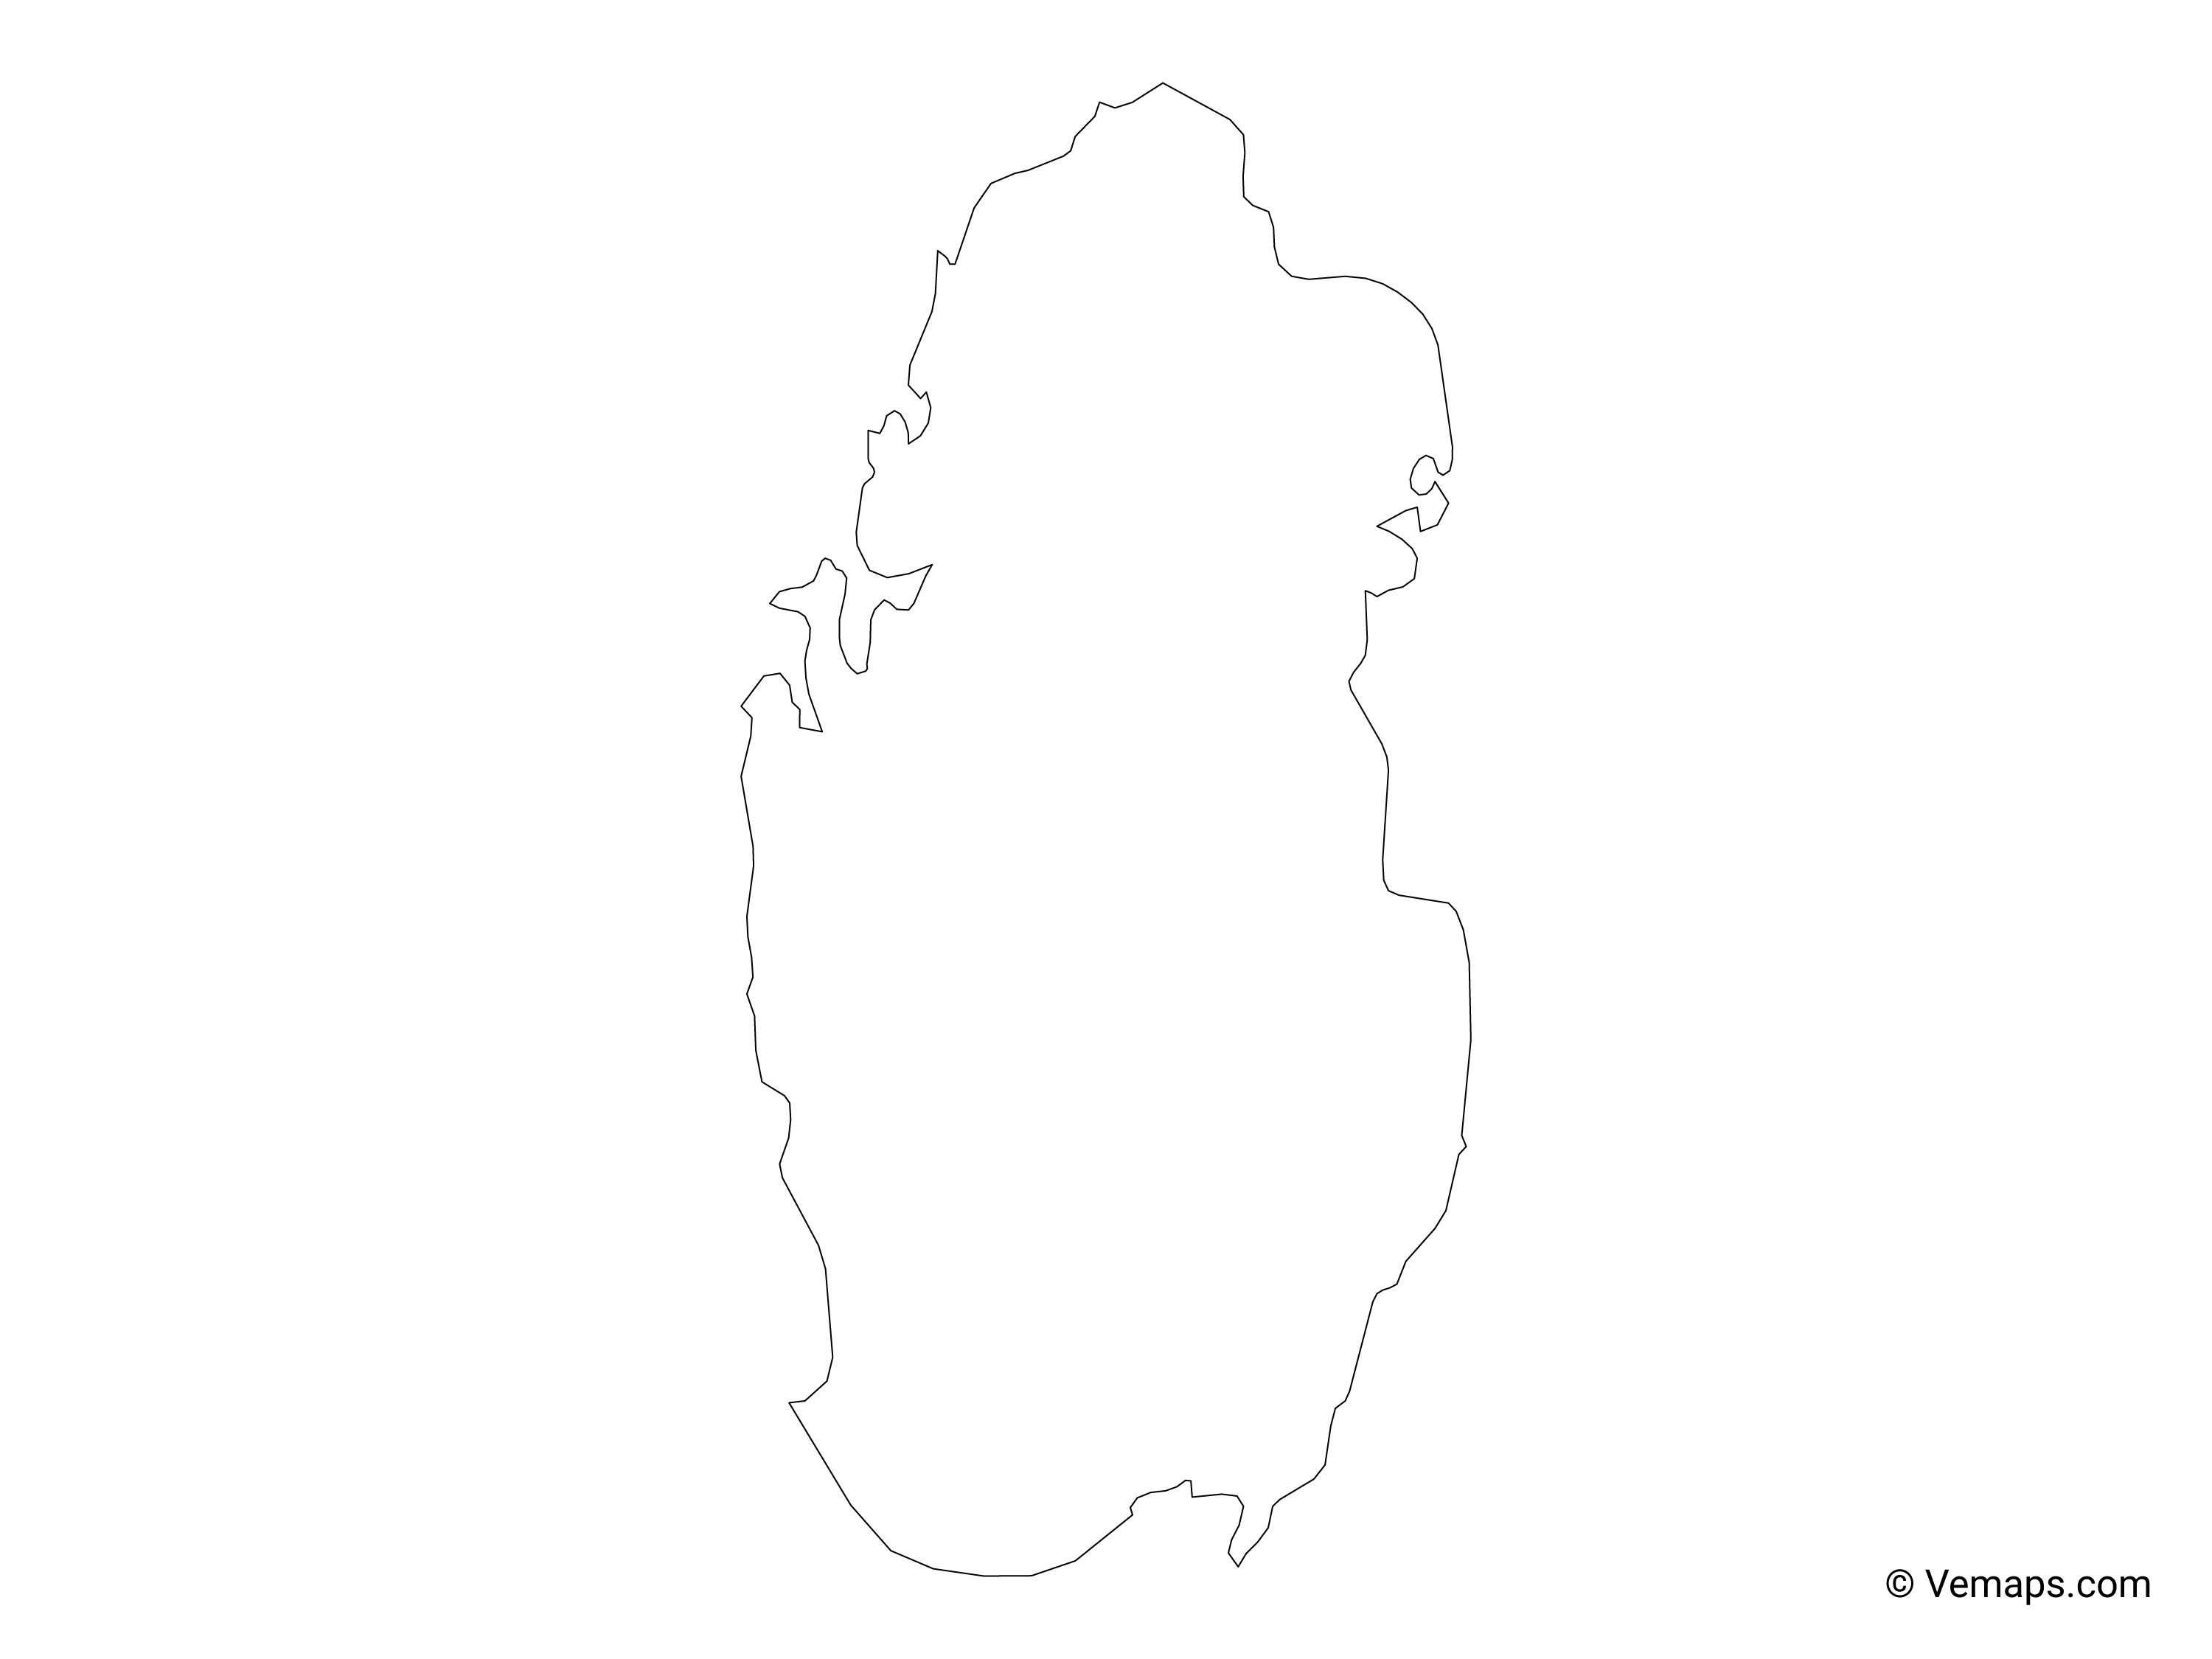 Outline Map of Qatar | Free Vector Maps